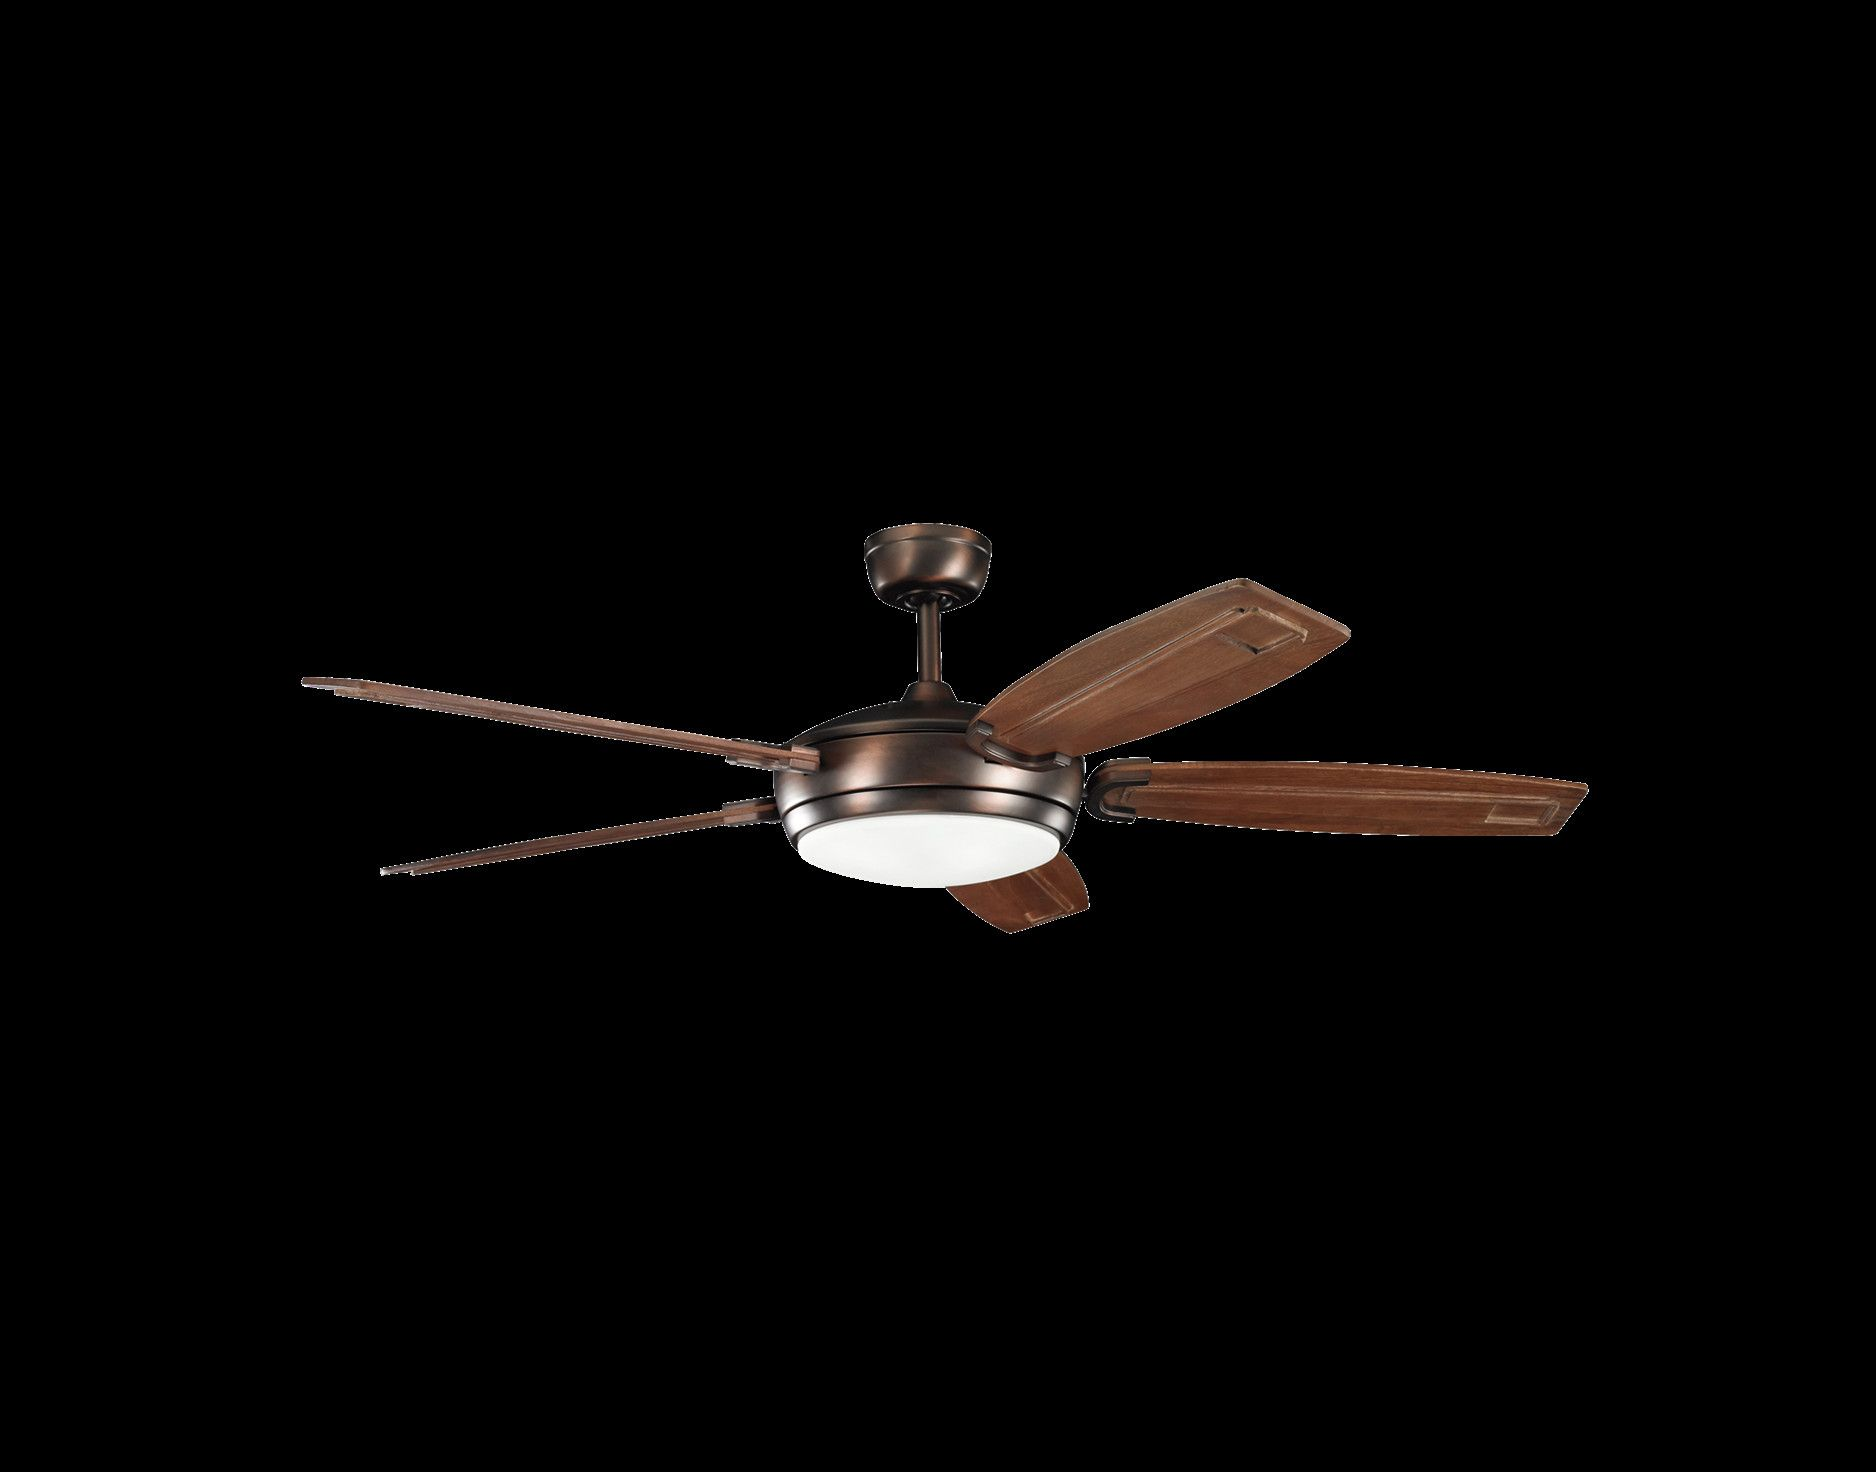 30 Breathtaking 60 Ceiling Fans With Light And Remote Inspiration